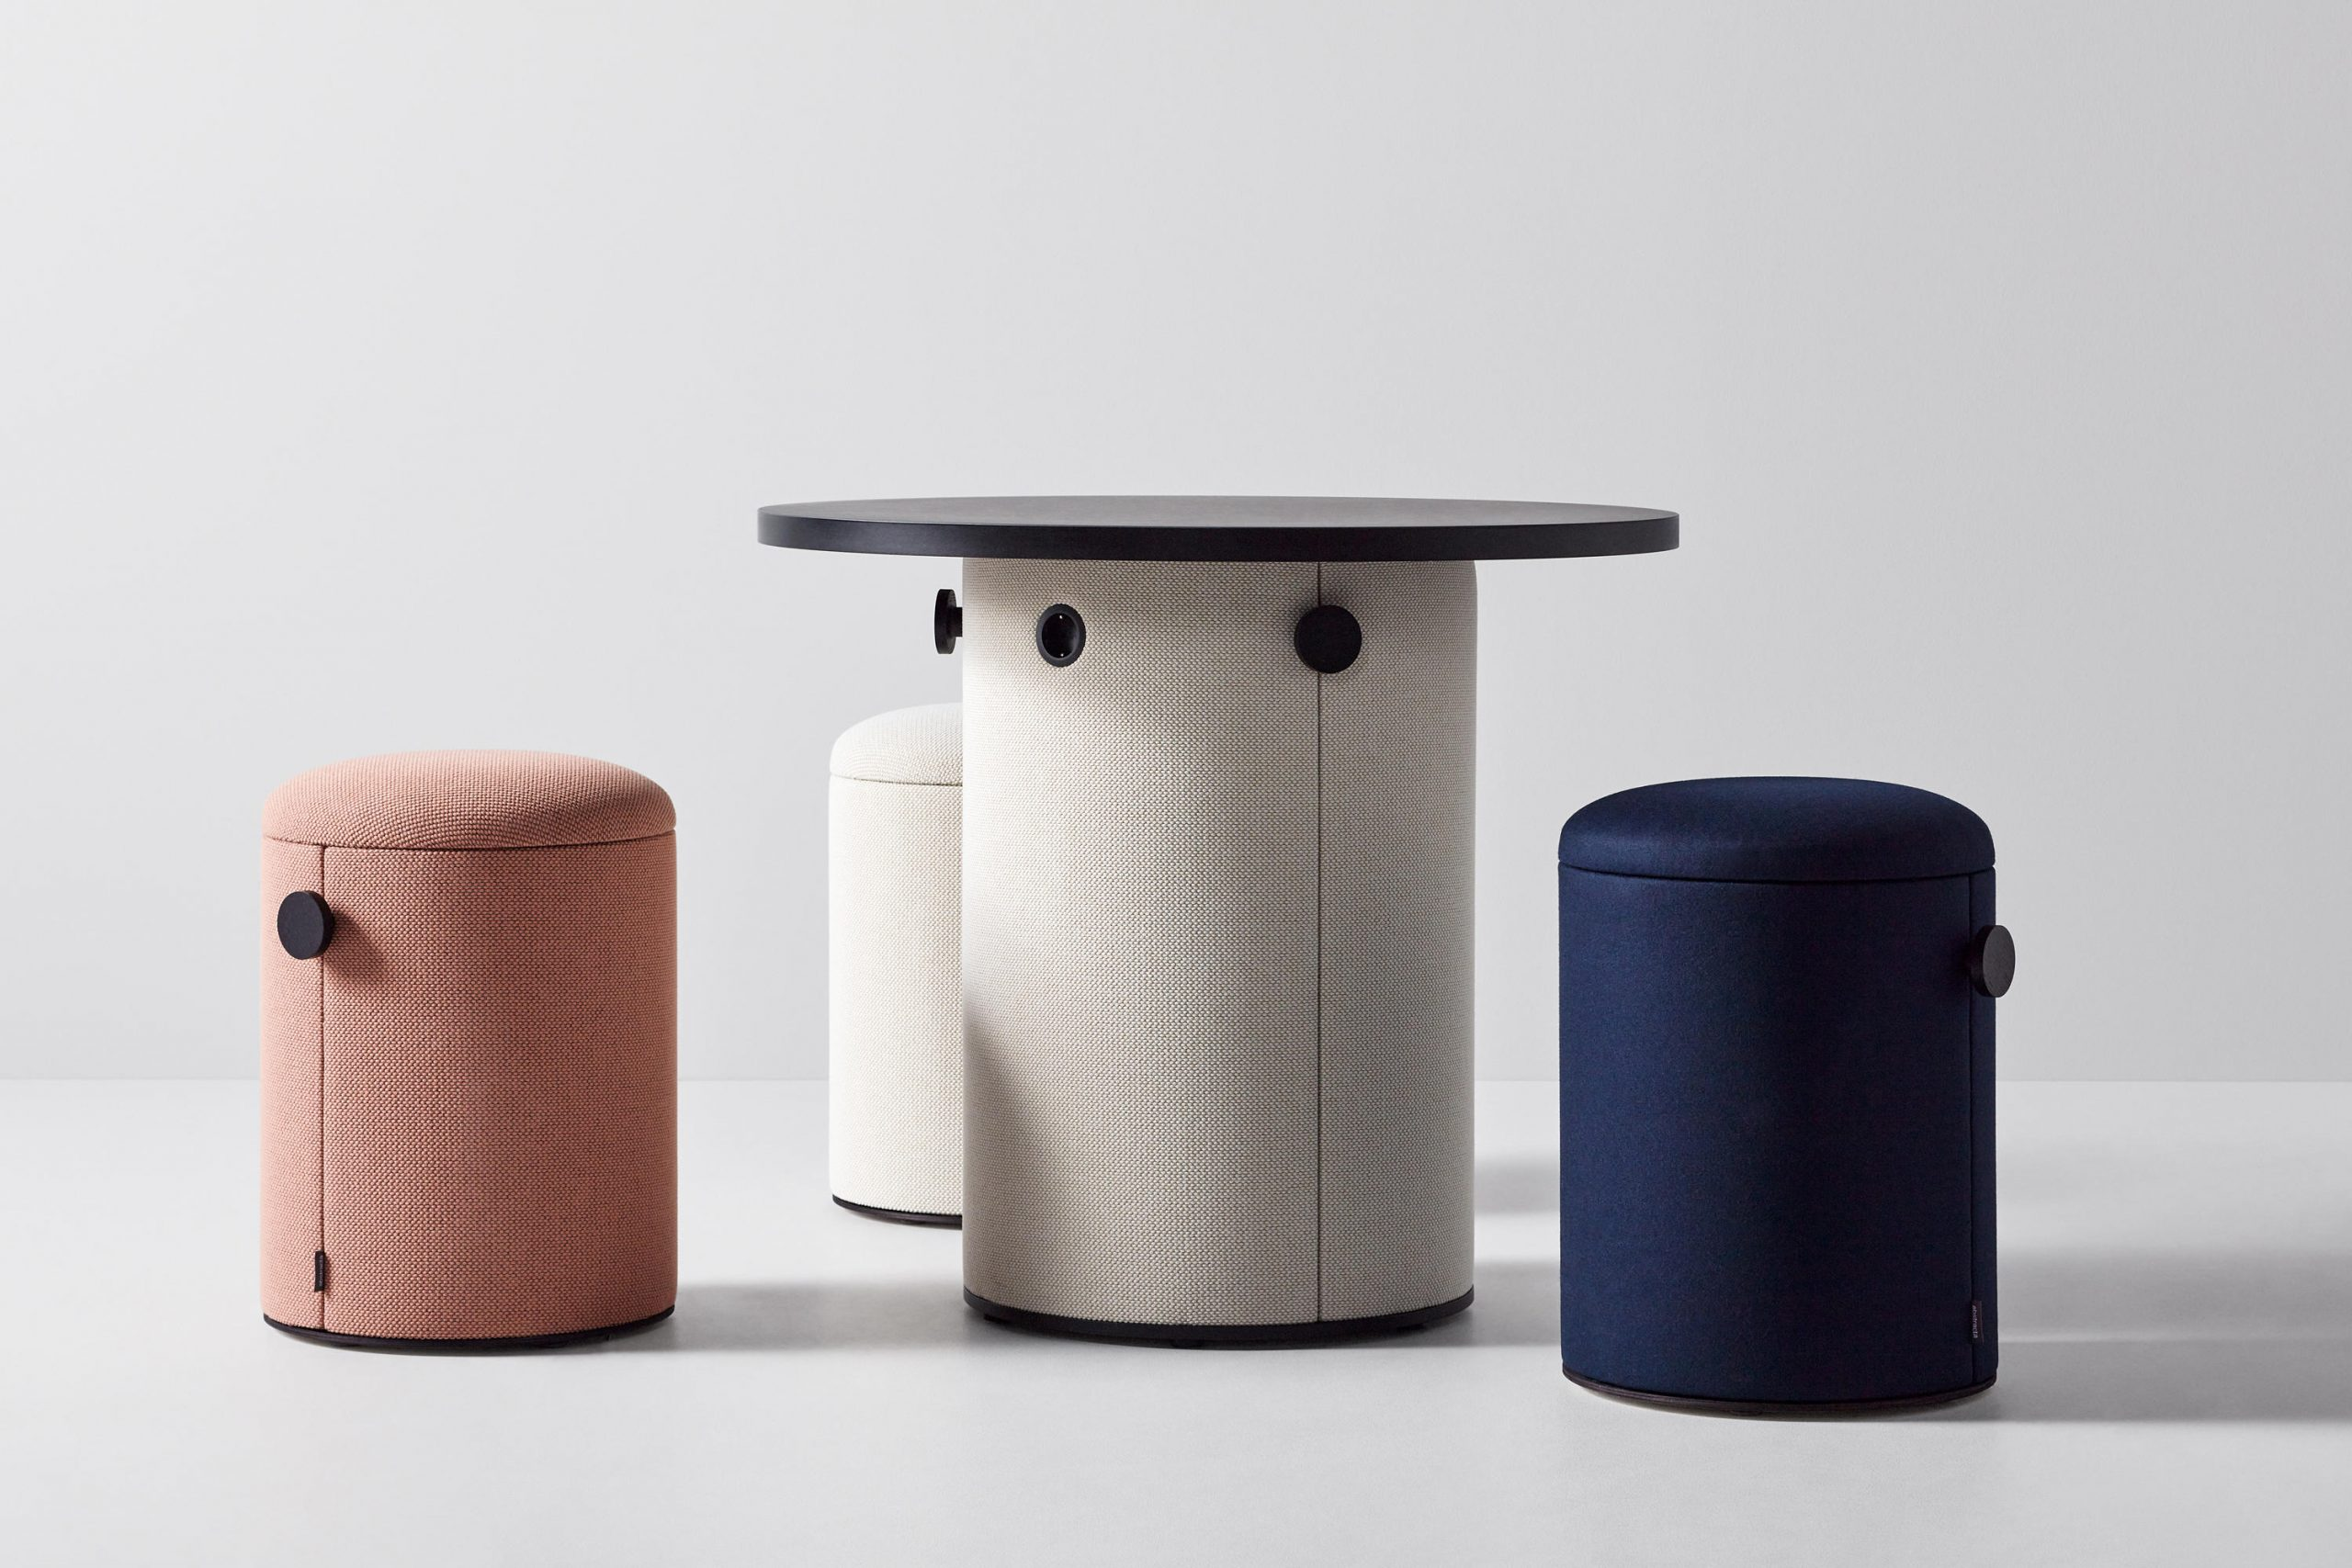 dB Pillar Collection by Abstracta